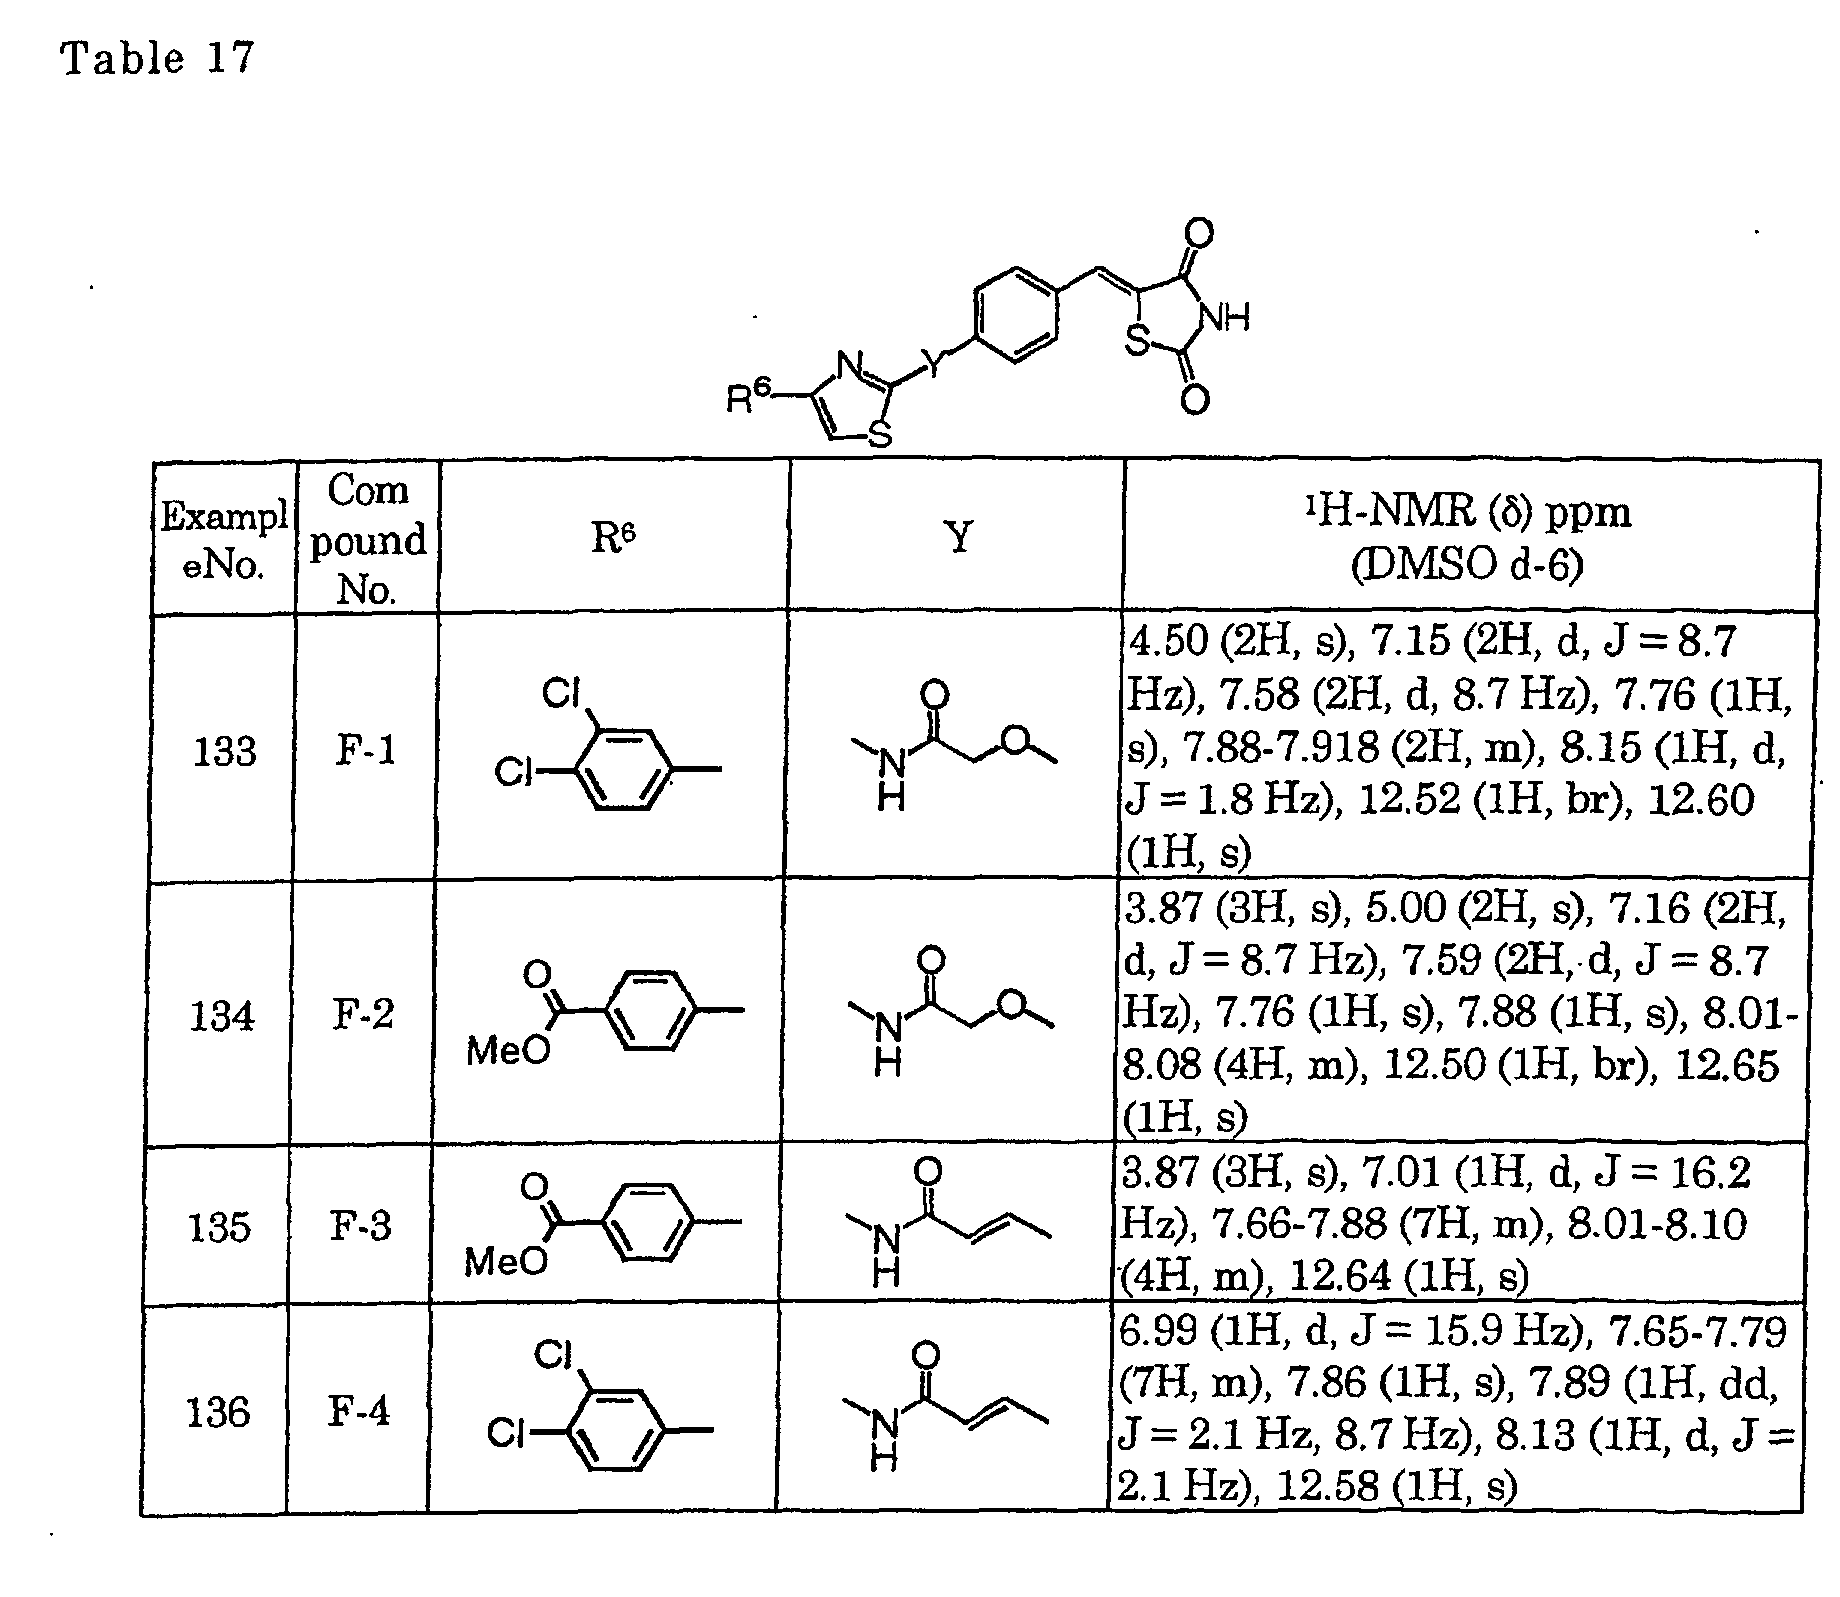 3b70e5c5d5c Compound (F-1) to Compound (F-4) were synthesized in a manner similar to  Example 1 by using methyl 4-formyl-phenoxyacetate